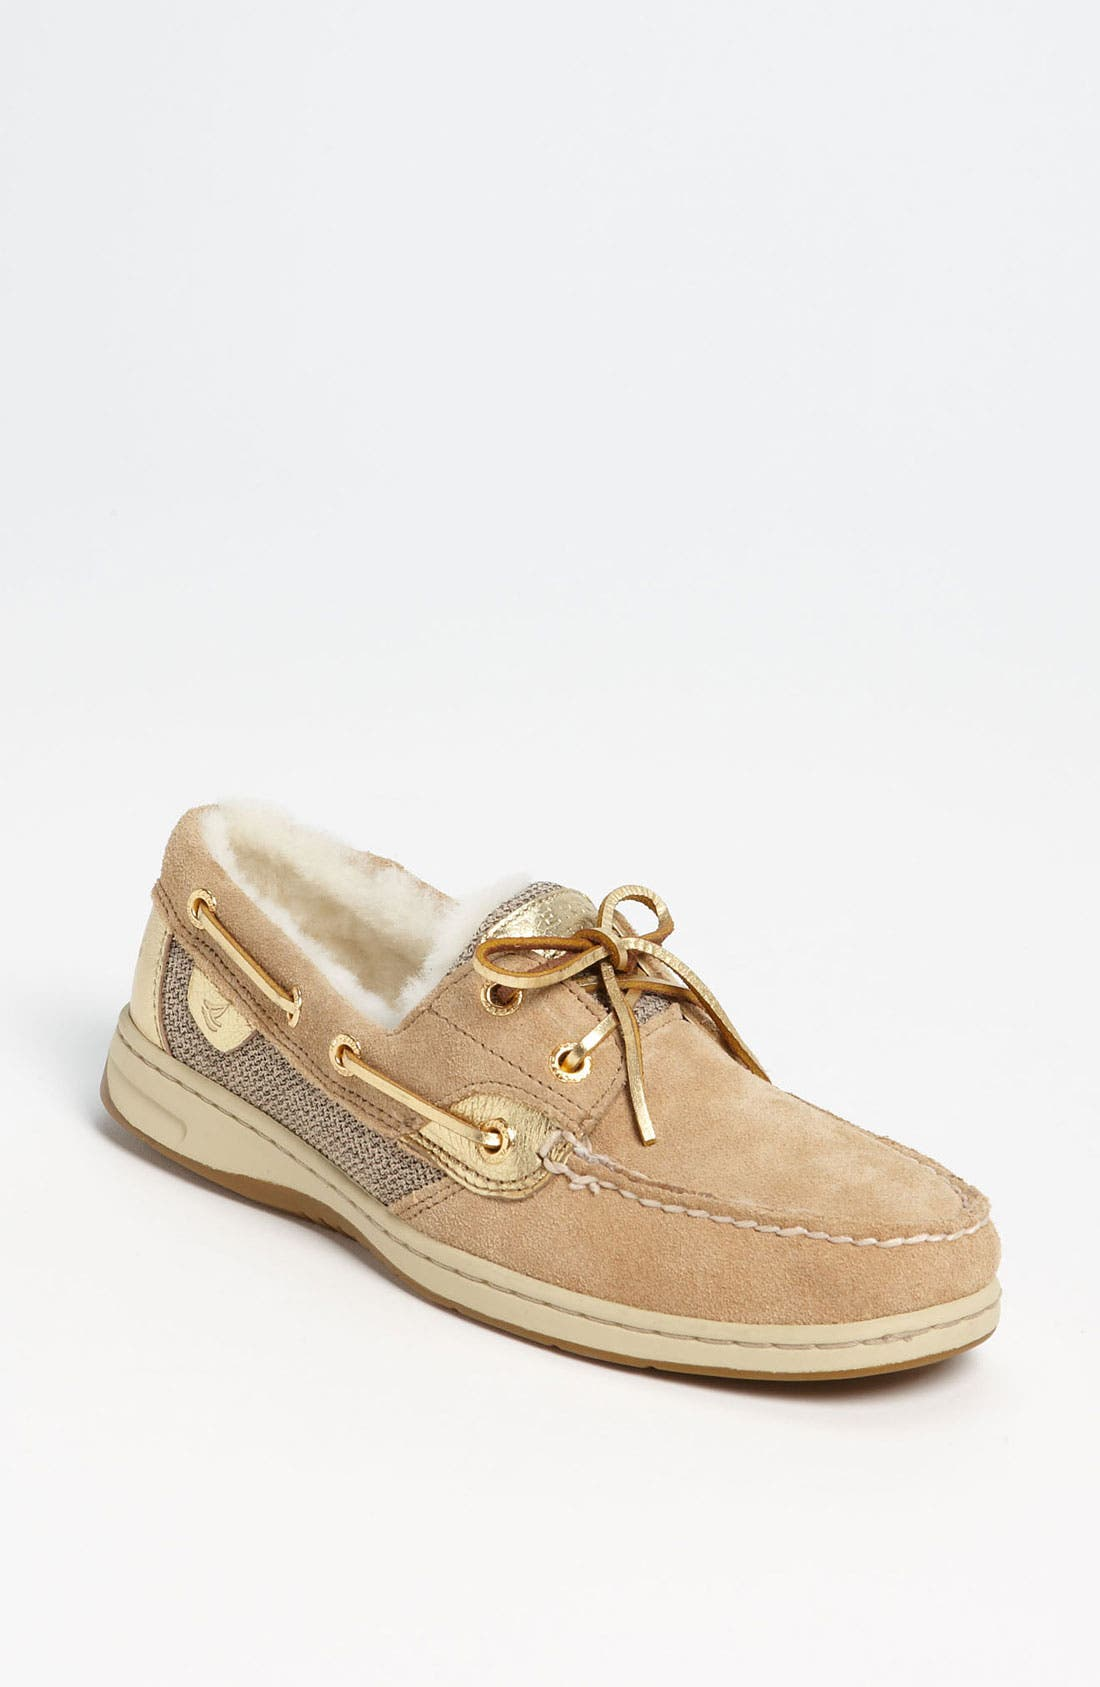 Alternate Image 1 Selected - Sperry Top-Sider® 'Bluefish' Boat Shoe